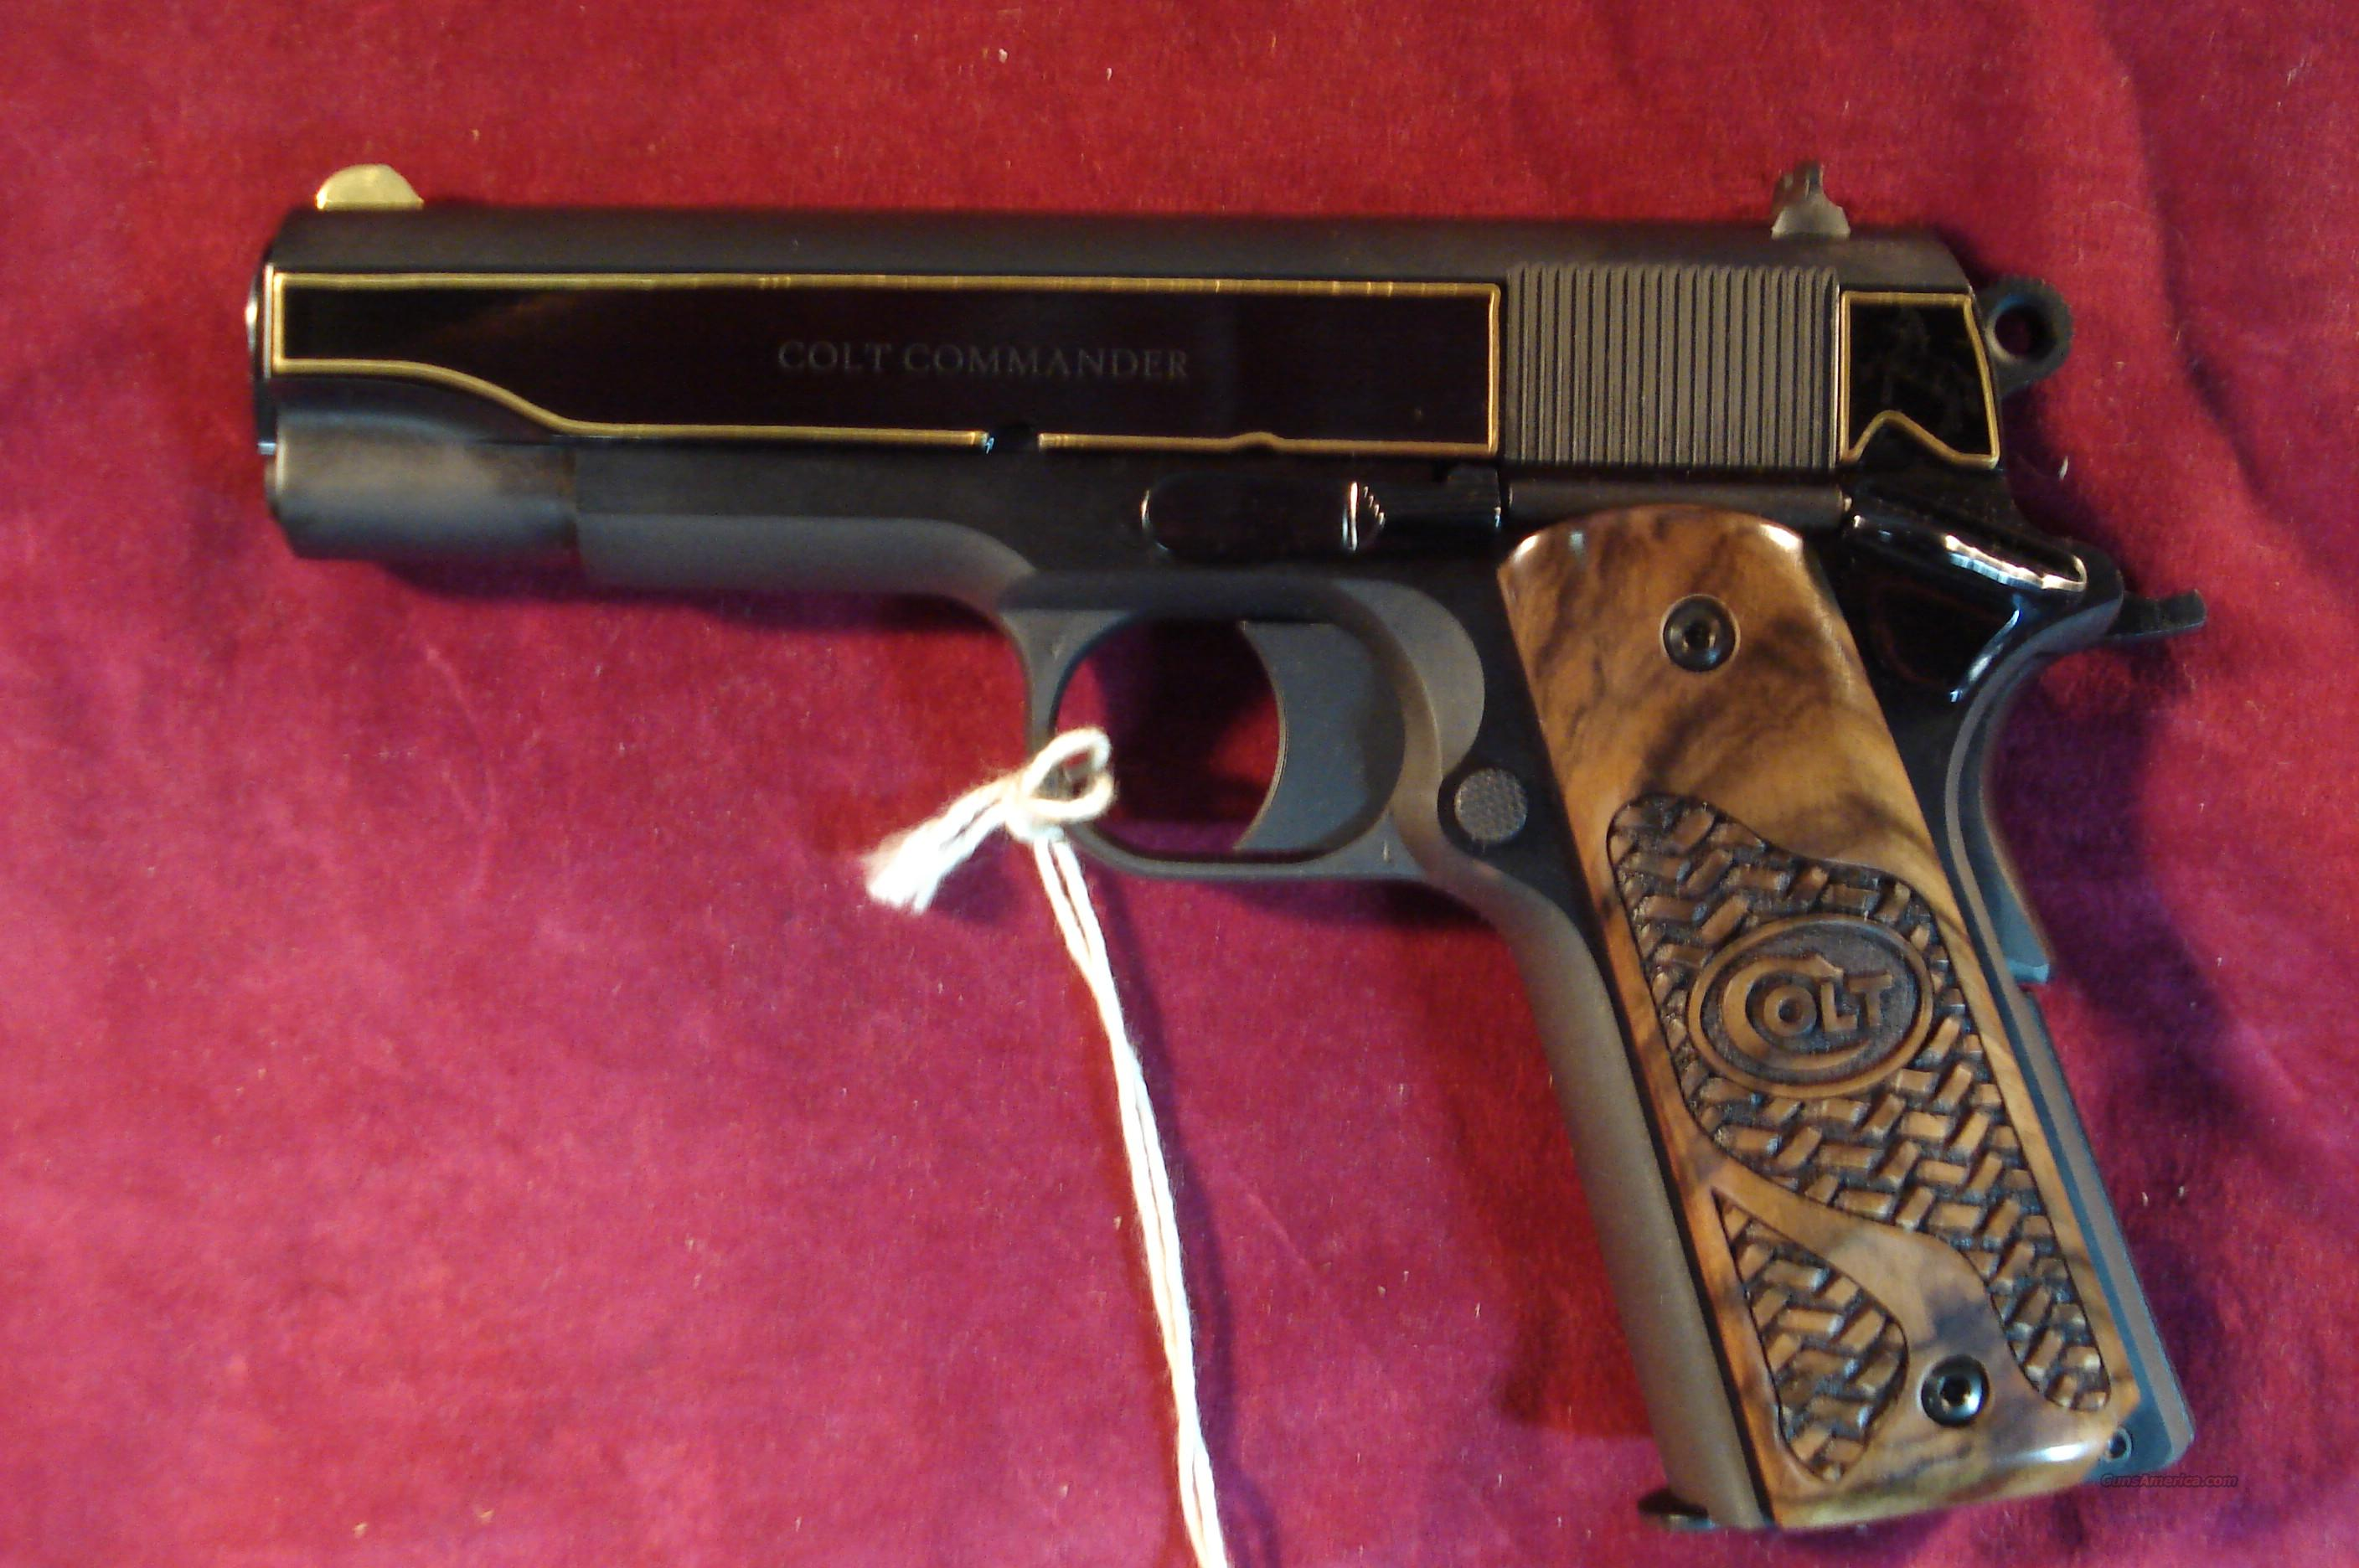 COLT 1911 TALO COMMANDER GOLD EDITION 45ACP #145 OF 300 MADE NEW (O4691CDR)  Guns > Pistols > Colt Automatic Pistols (1911 & Var)